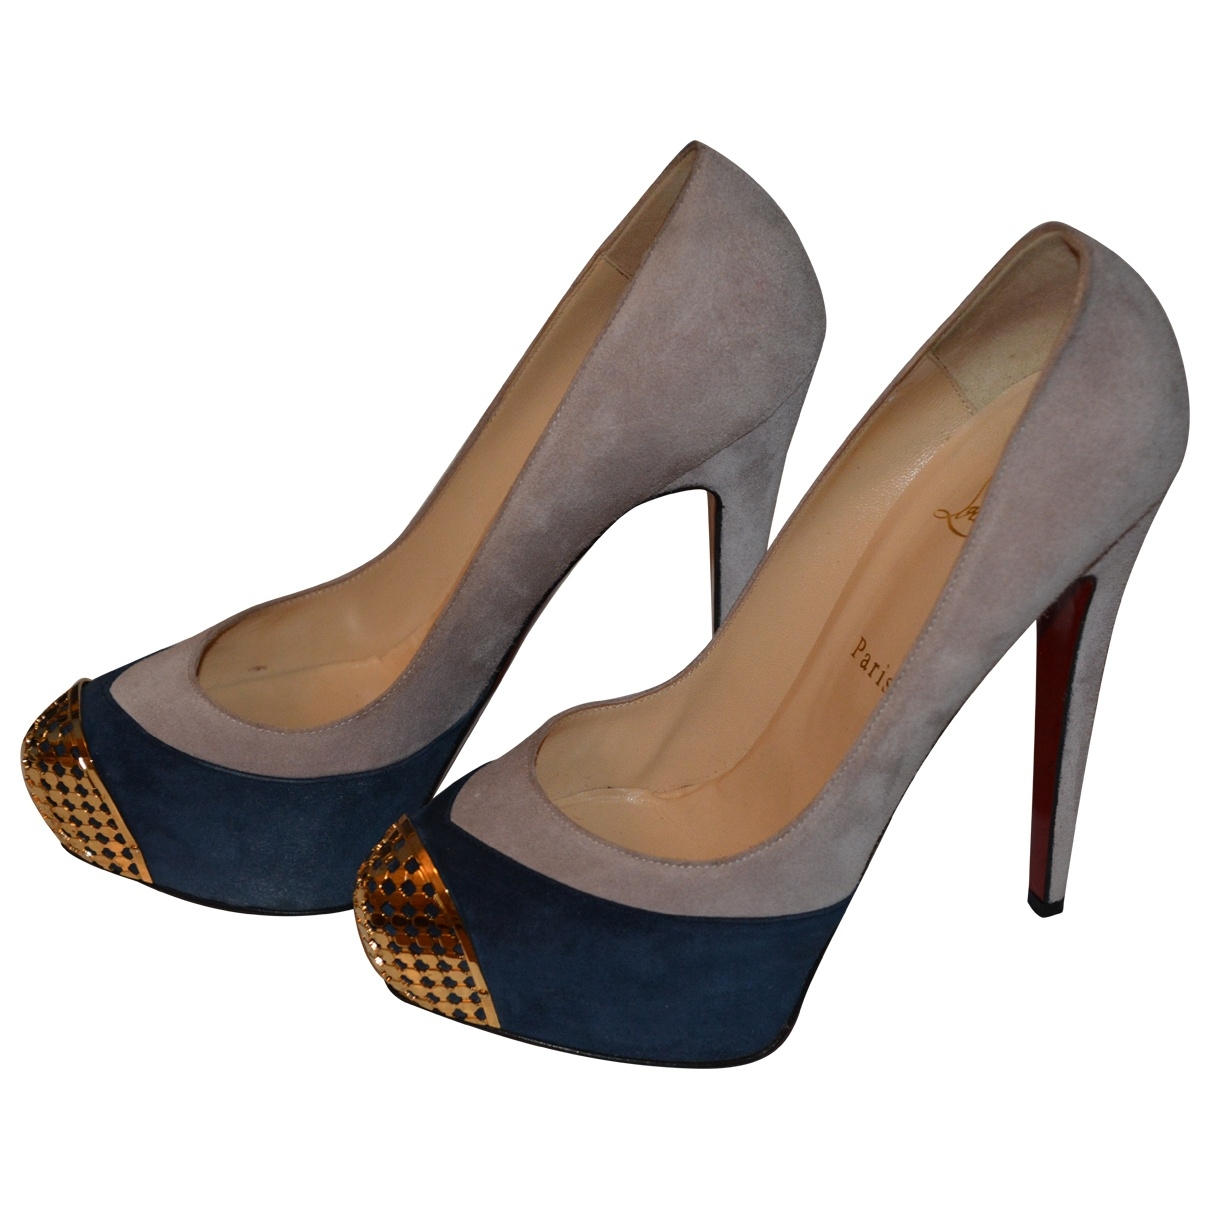 Christian Louboutin \N Blue Suede Heels for Women 38.5 EU